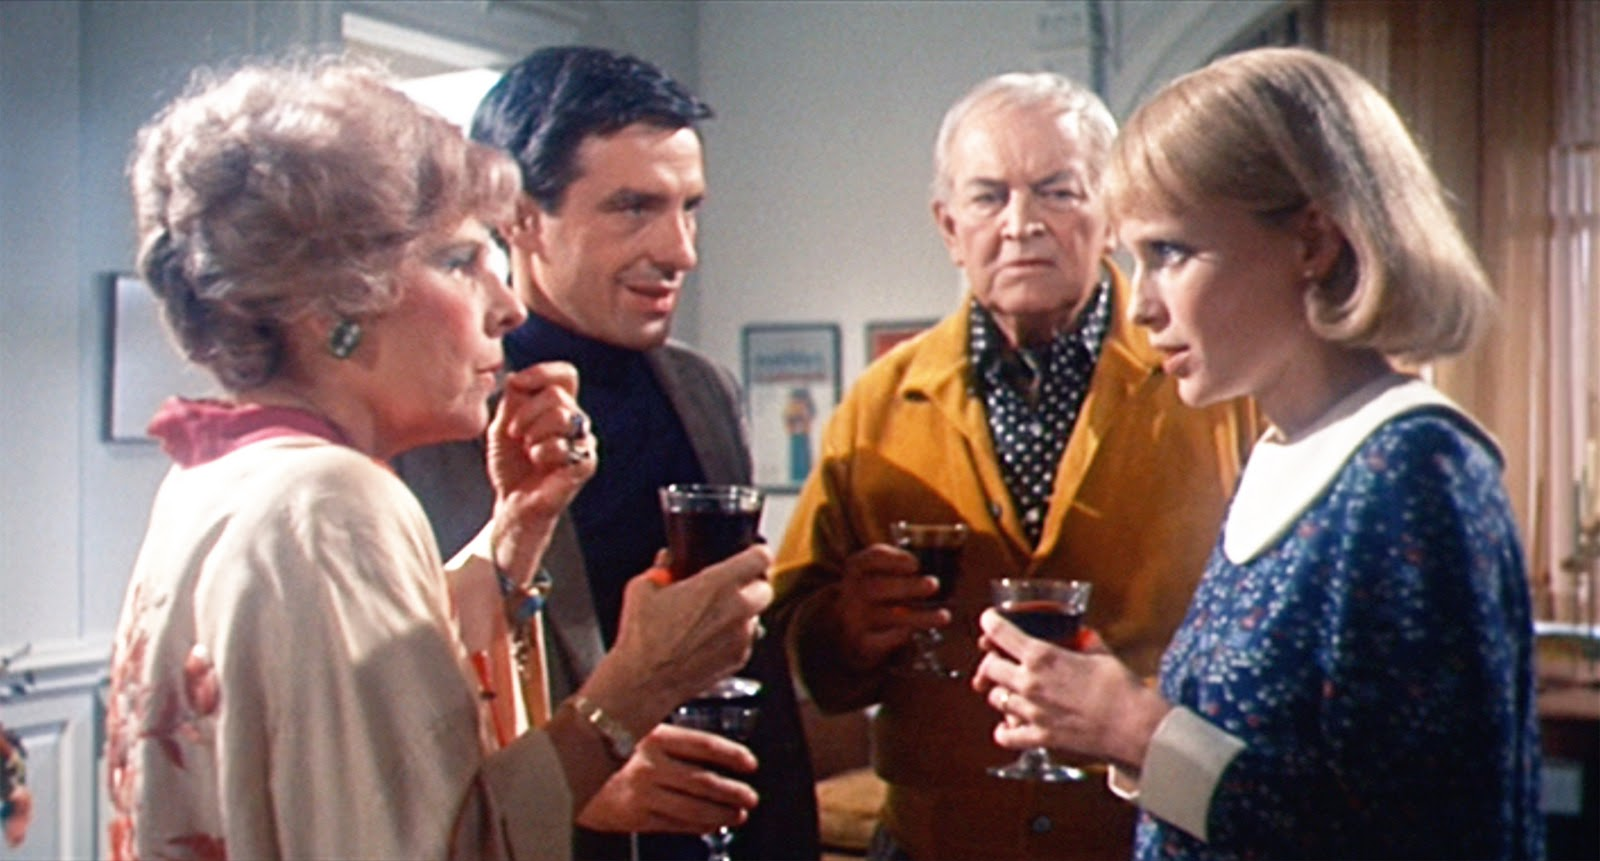 Satanists in Rosemary's Baby (1968) - Ruth Gordon, John Cassavetes, Maurice Evans and Mia Farrow